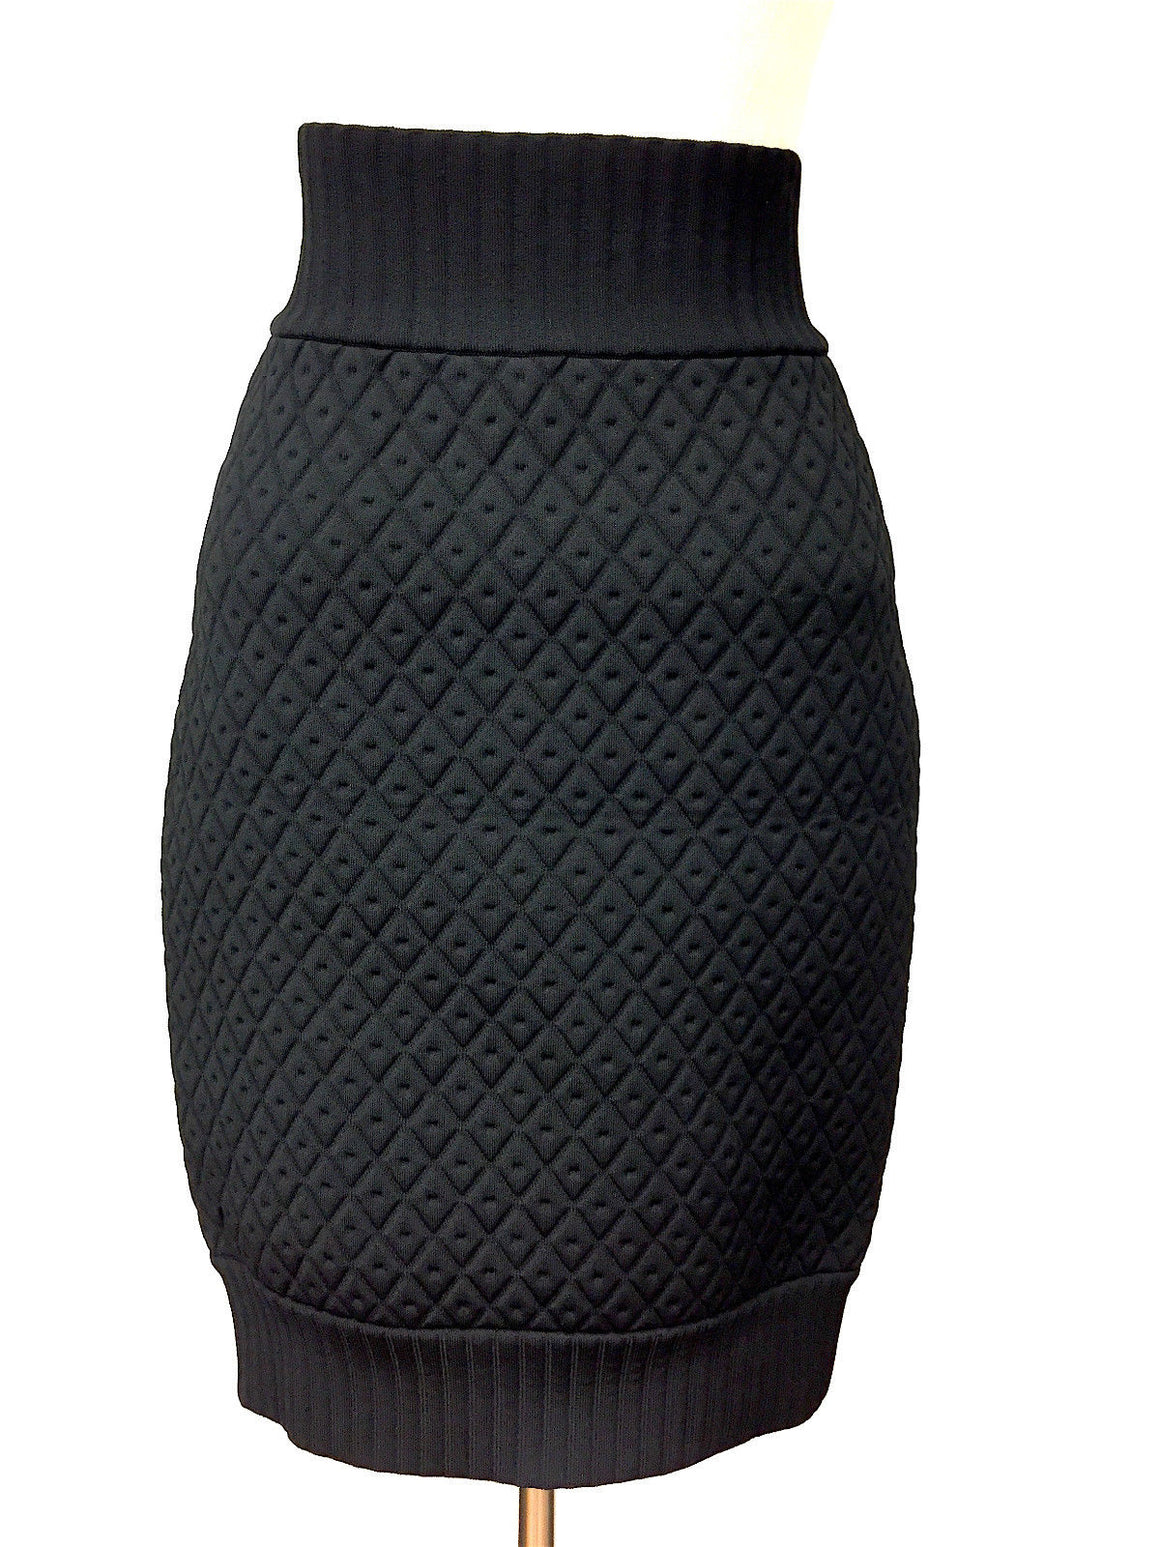 bisbiz.com CHANEL Black Diamond-Quilted Viscose-Blend Knit Tulip Skirt Size: EU34 / 4 - Bis Luxury Resale